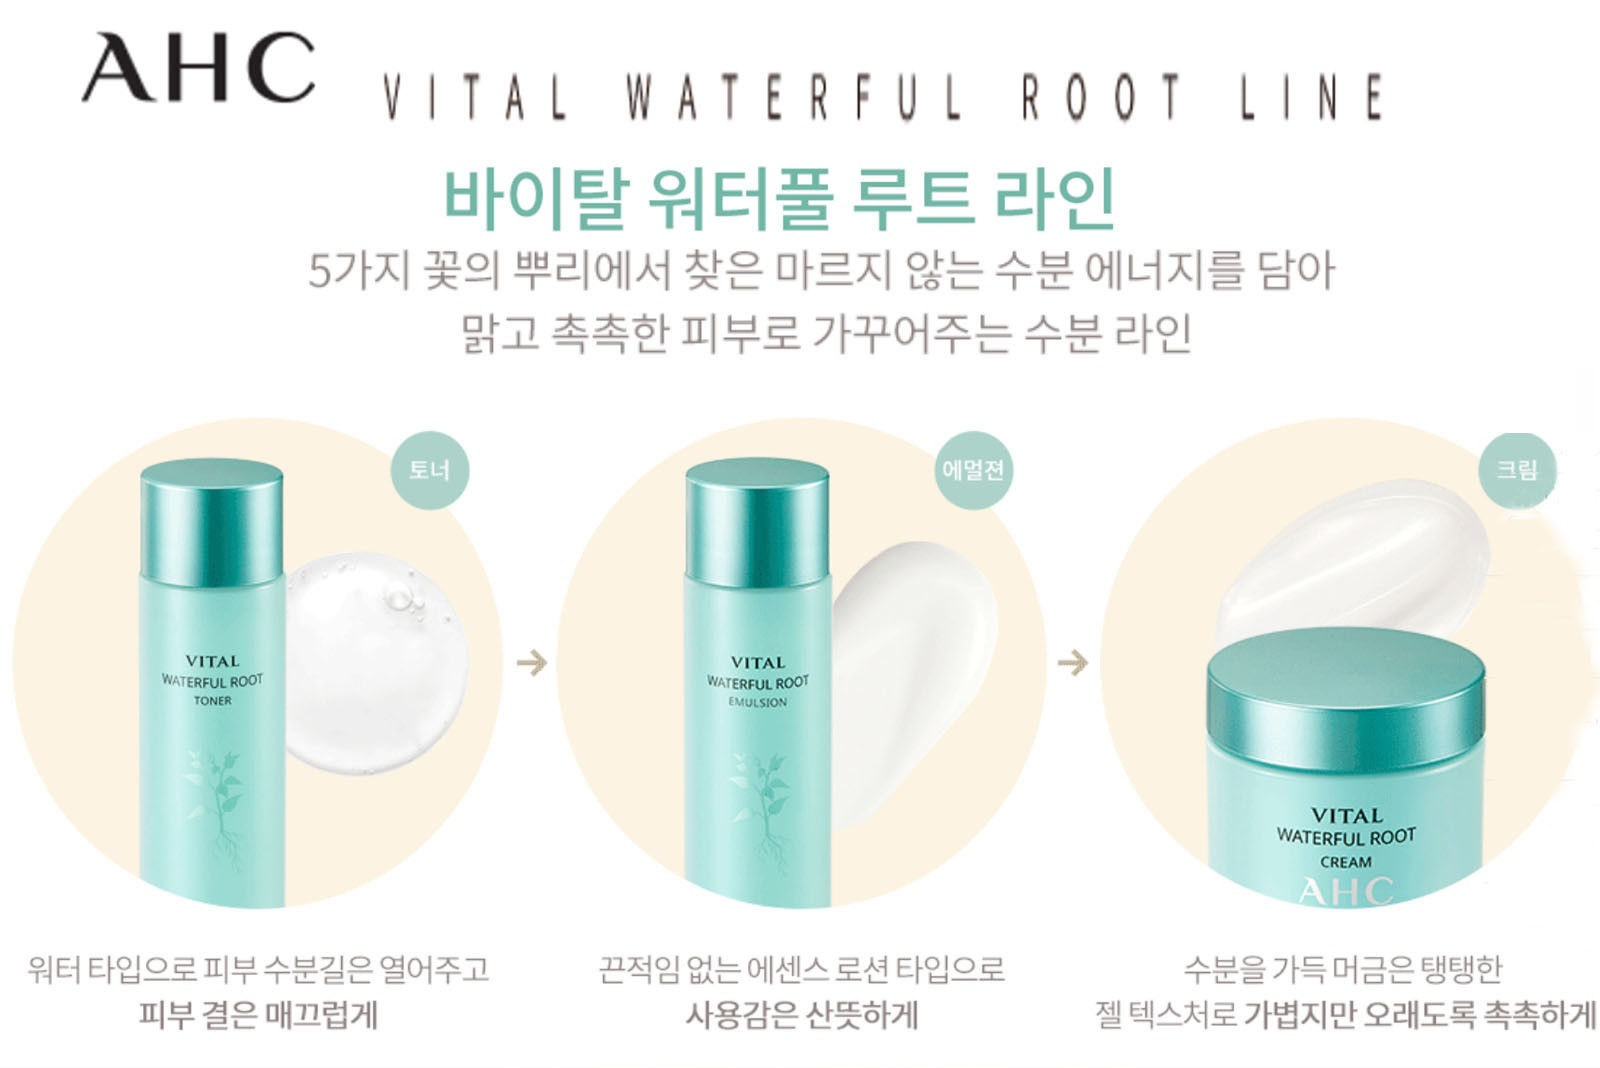 AHC Vital Waterful Root Toner 140ml malaysia singapore indonesia